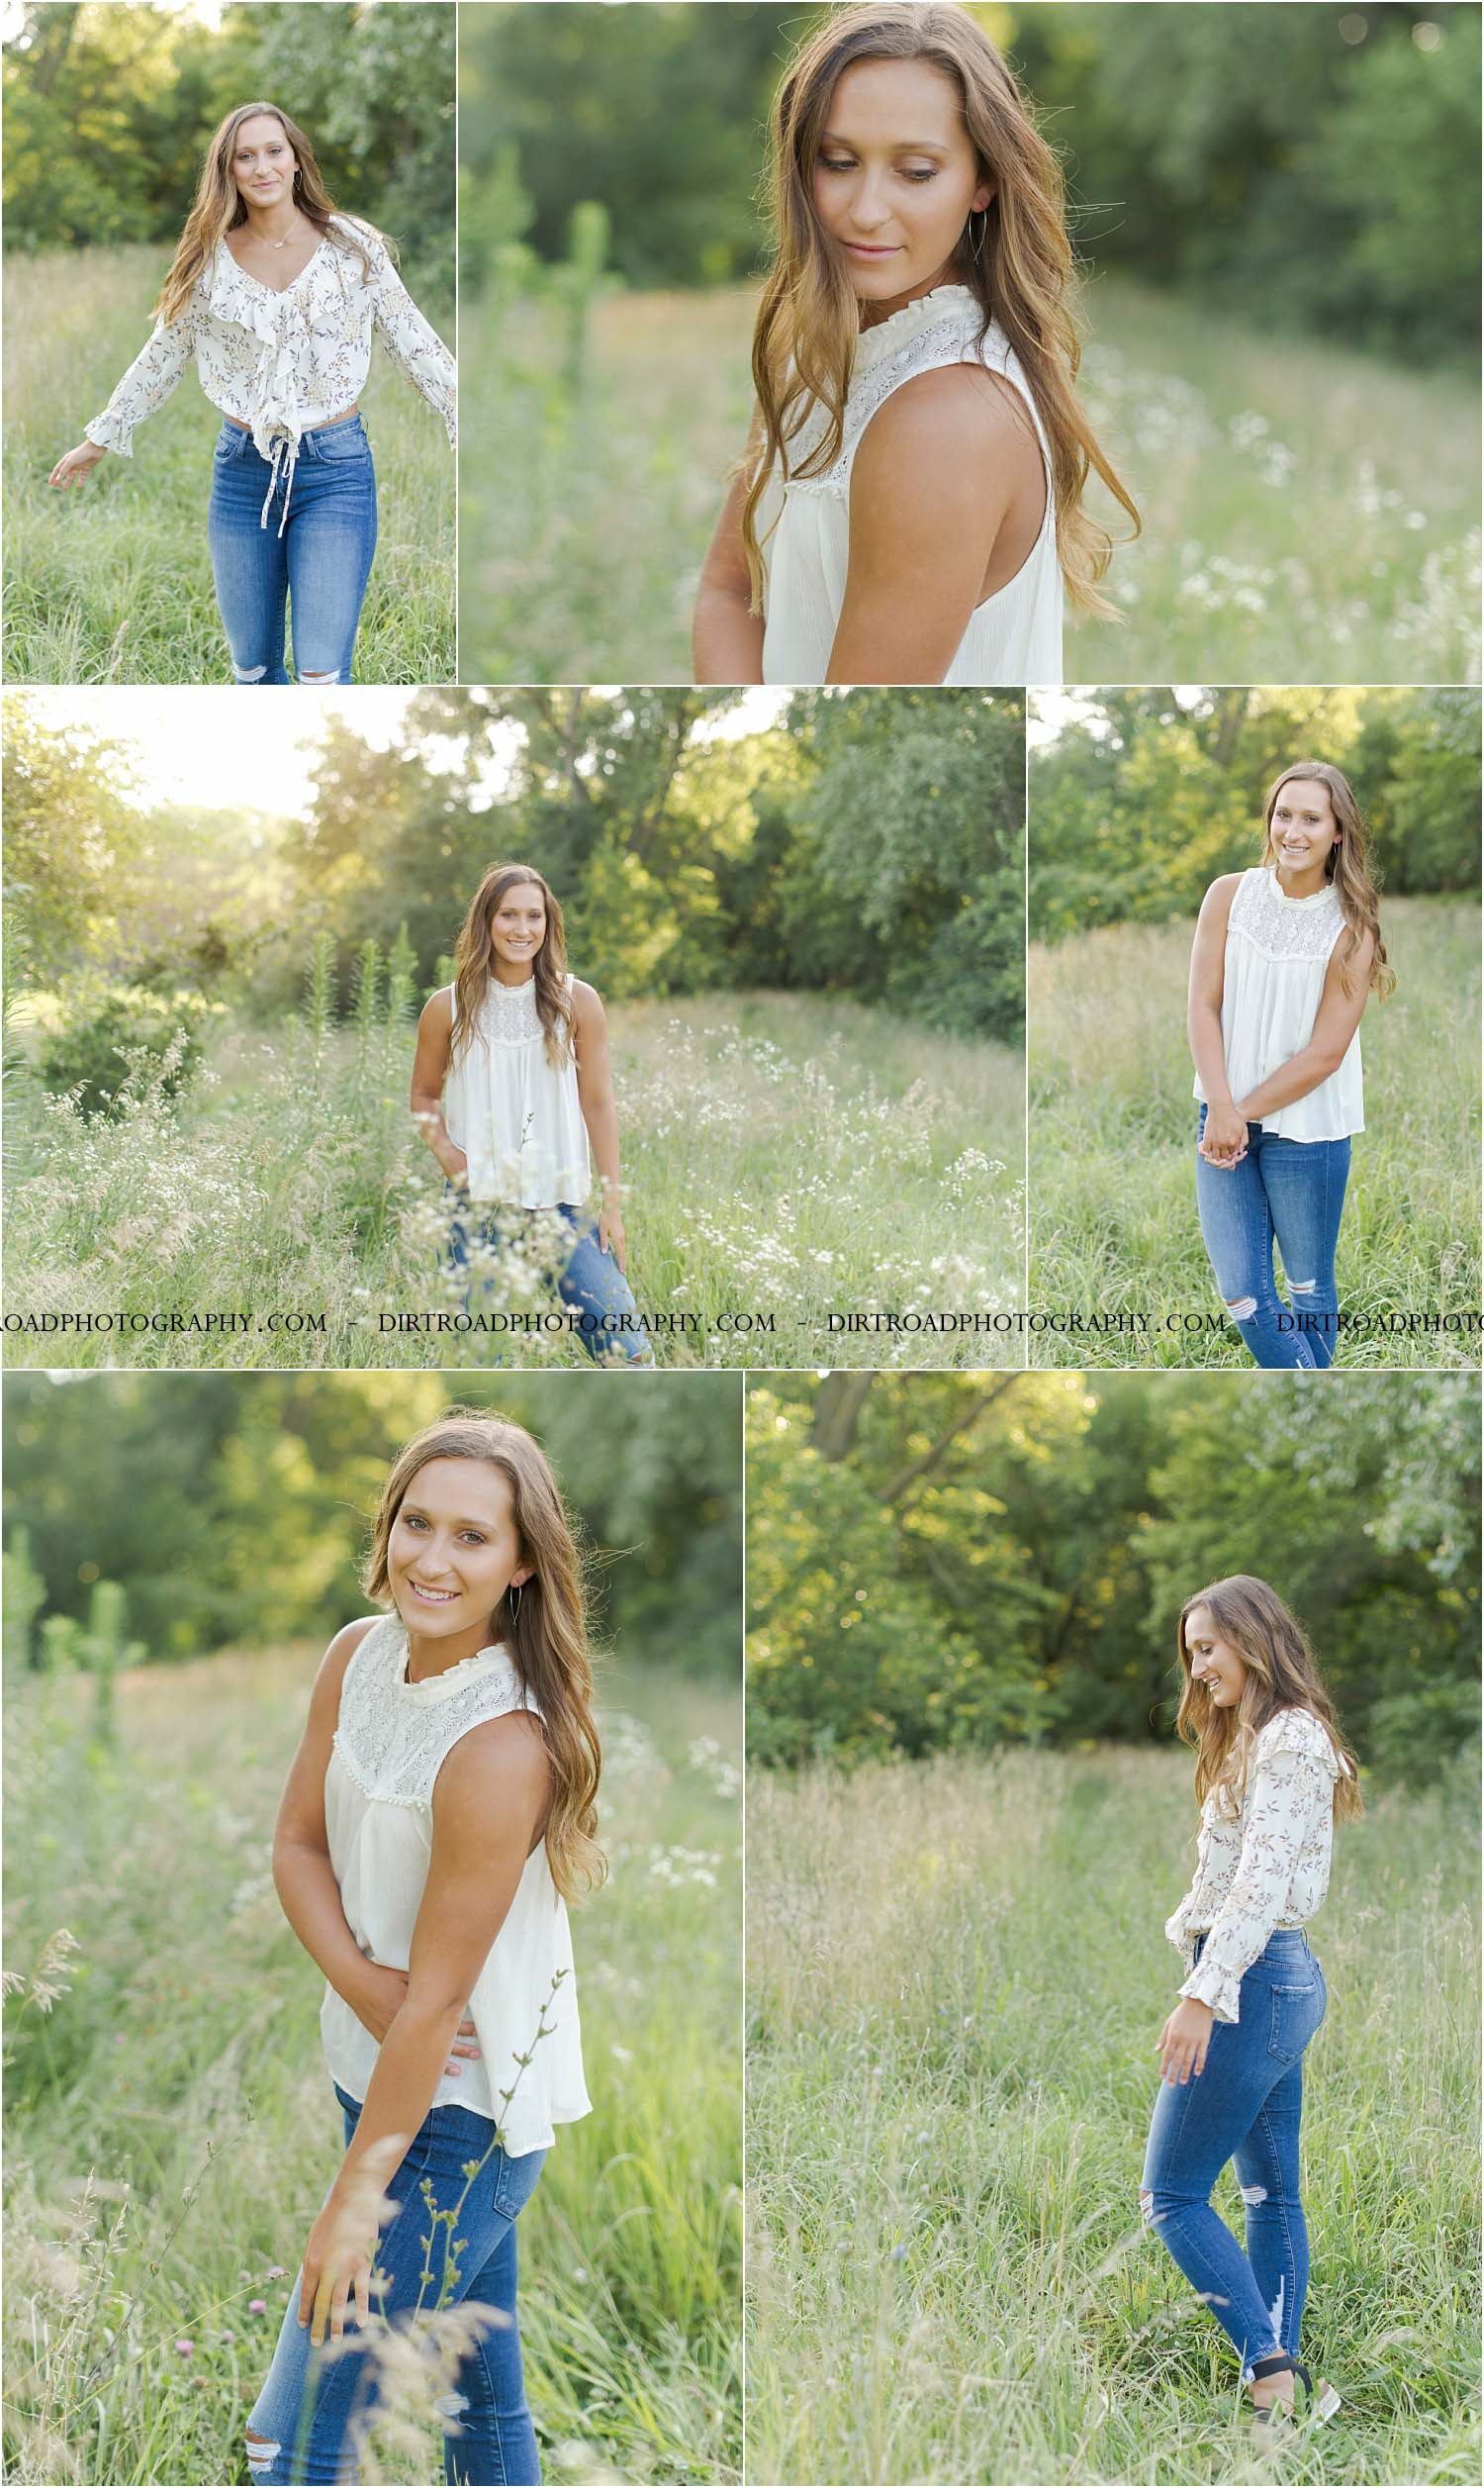 images of high school girl senior photos named tia kreshel of wilber nebraska who went to wilber-clatonia high school in wilber nebraska and is part of the class of 2020. photos were taken near wilber nebraska in saline county at farms. photo includes grain bins, tall grass, rustic barns, summer white wildflowers. tia is wearing white floral flowy top with blue denim jeans as well as floral off the shoulder dress and sandals. girl has long brown curly hair and styled make-up. dirt road surrounded by trees and dust at sunset. tall grass with a sunset behind as well. photographer is kelsey homolka nerud of wilber nebraska who specializes in high school senior photography and senior pictures.